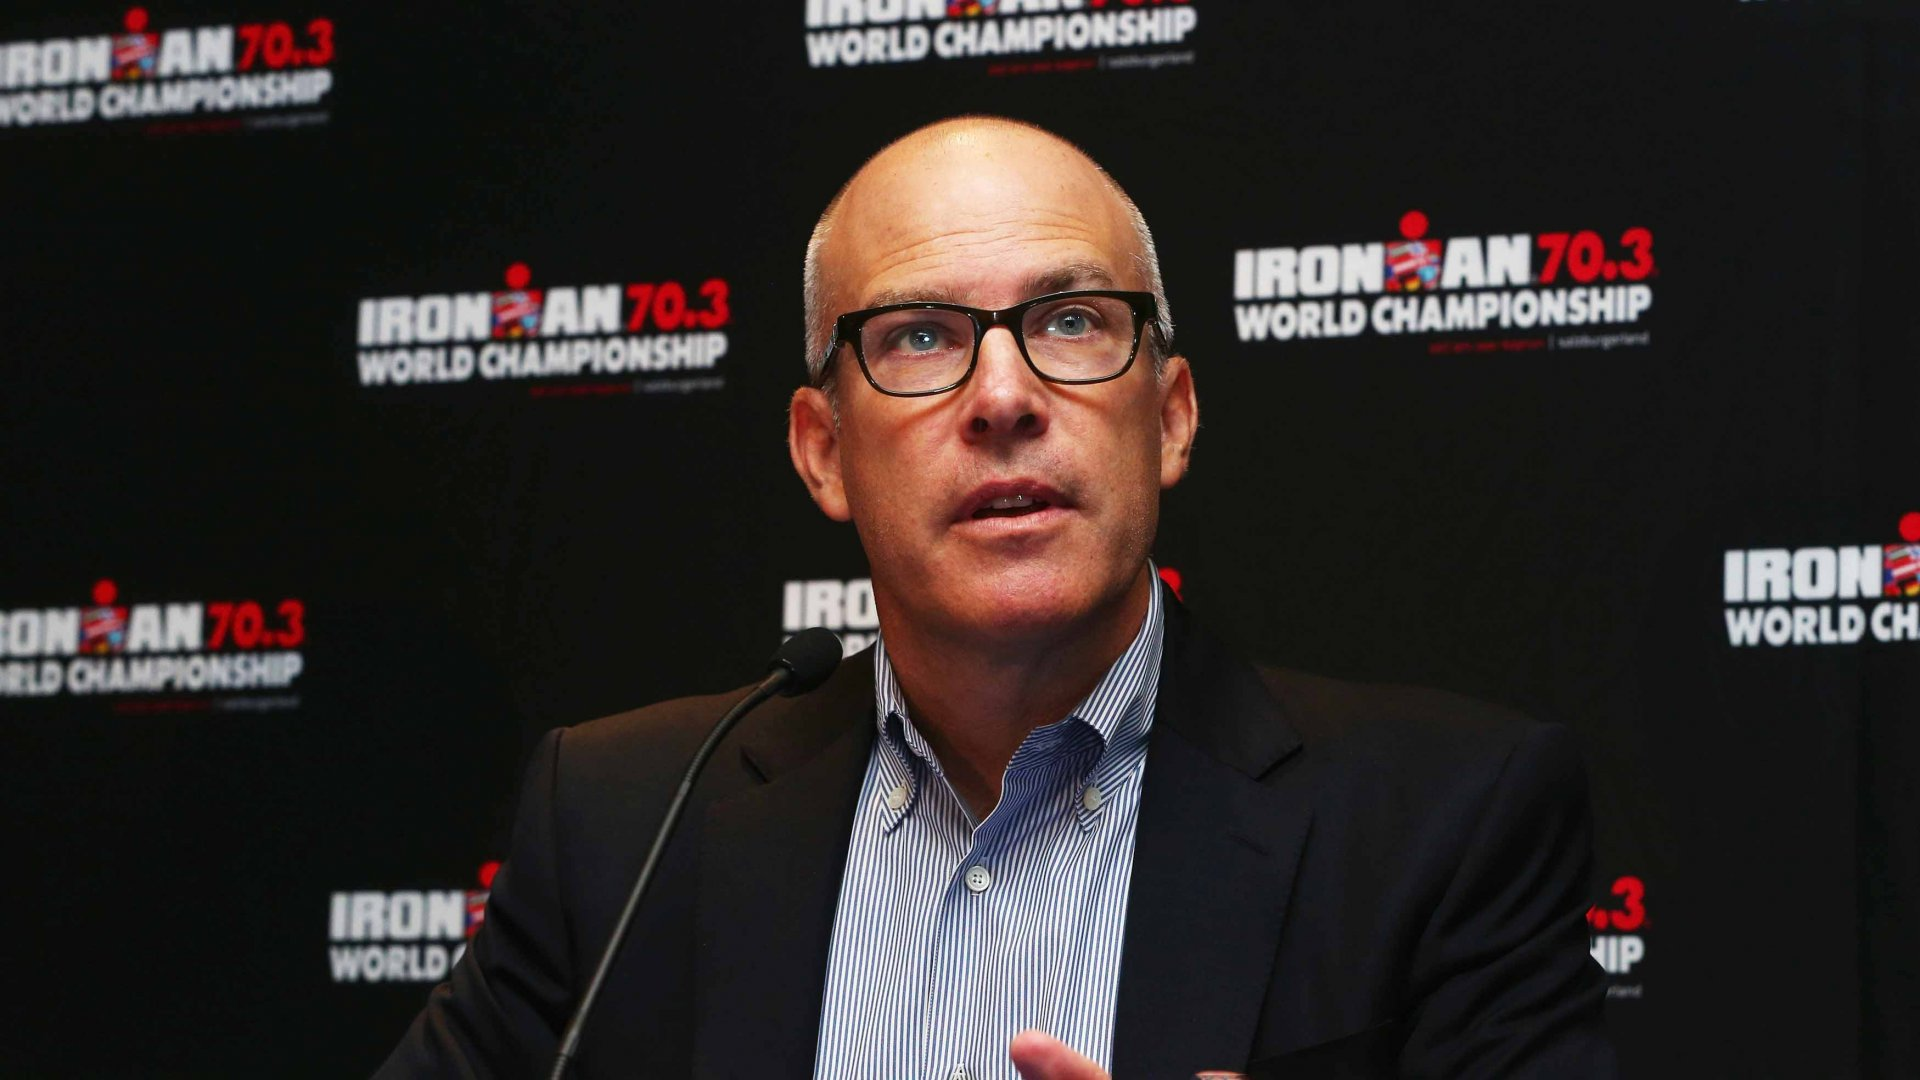 Andrew Messick, Chief Executive Officer of IRONMAN.